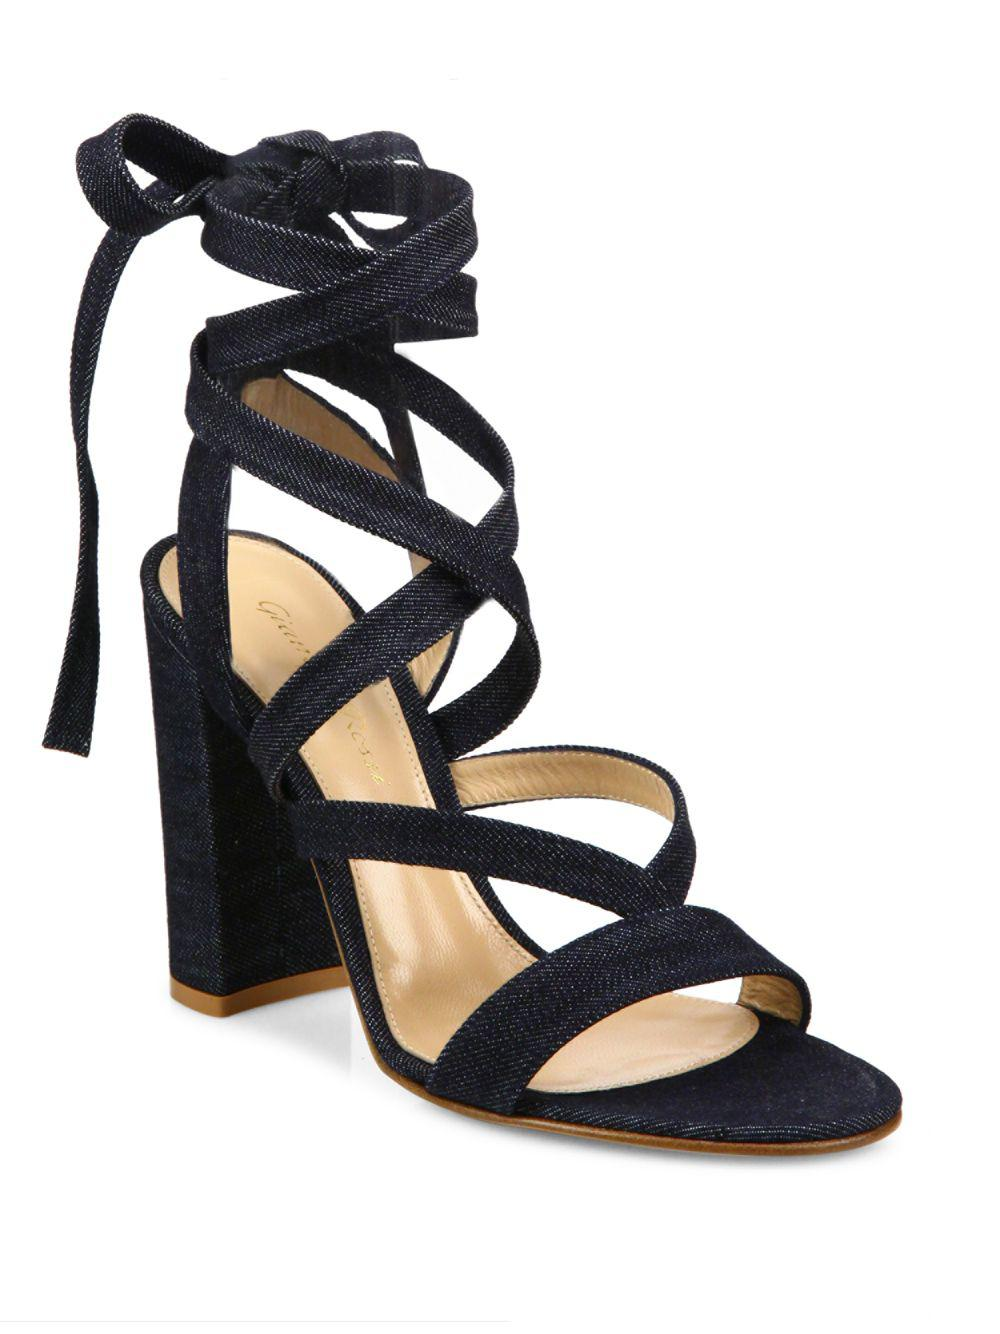 2a71f5bba27 Gianvito Rossi Denim Lace-up Gladiator Sandals in Blue - Lyst